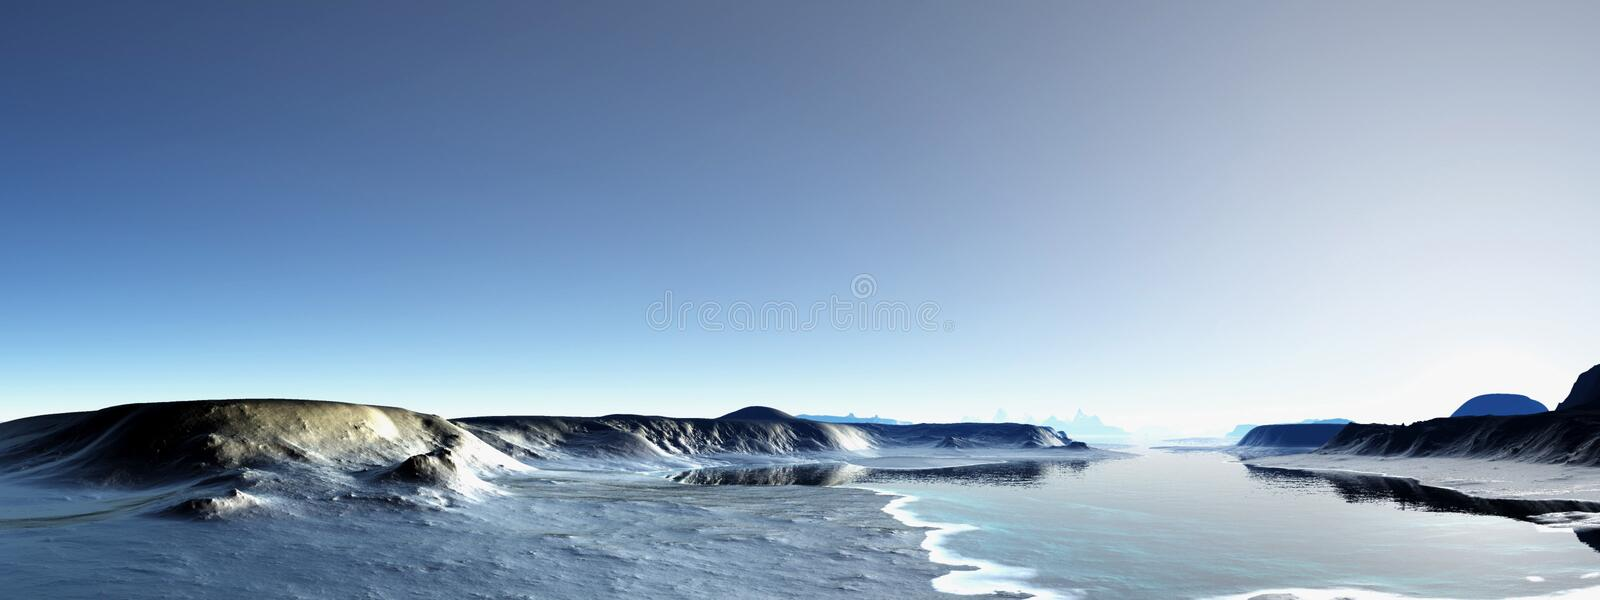 Antarctica royalty free stock image